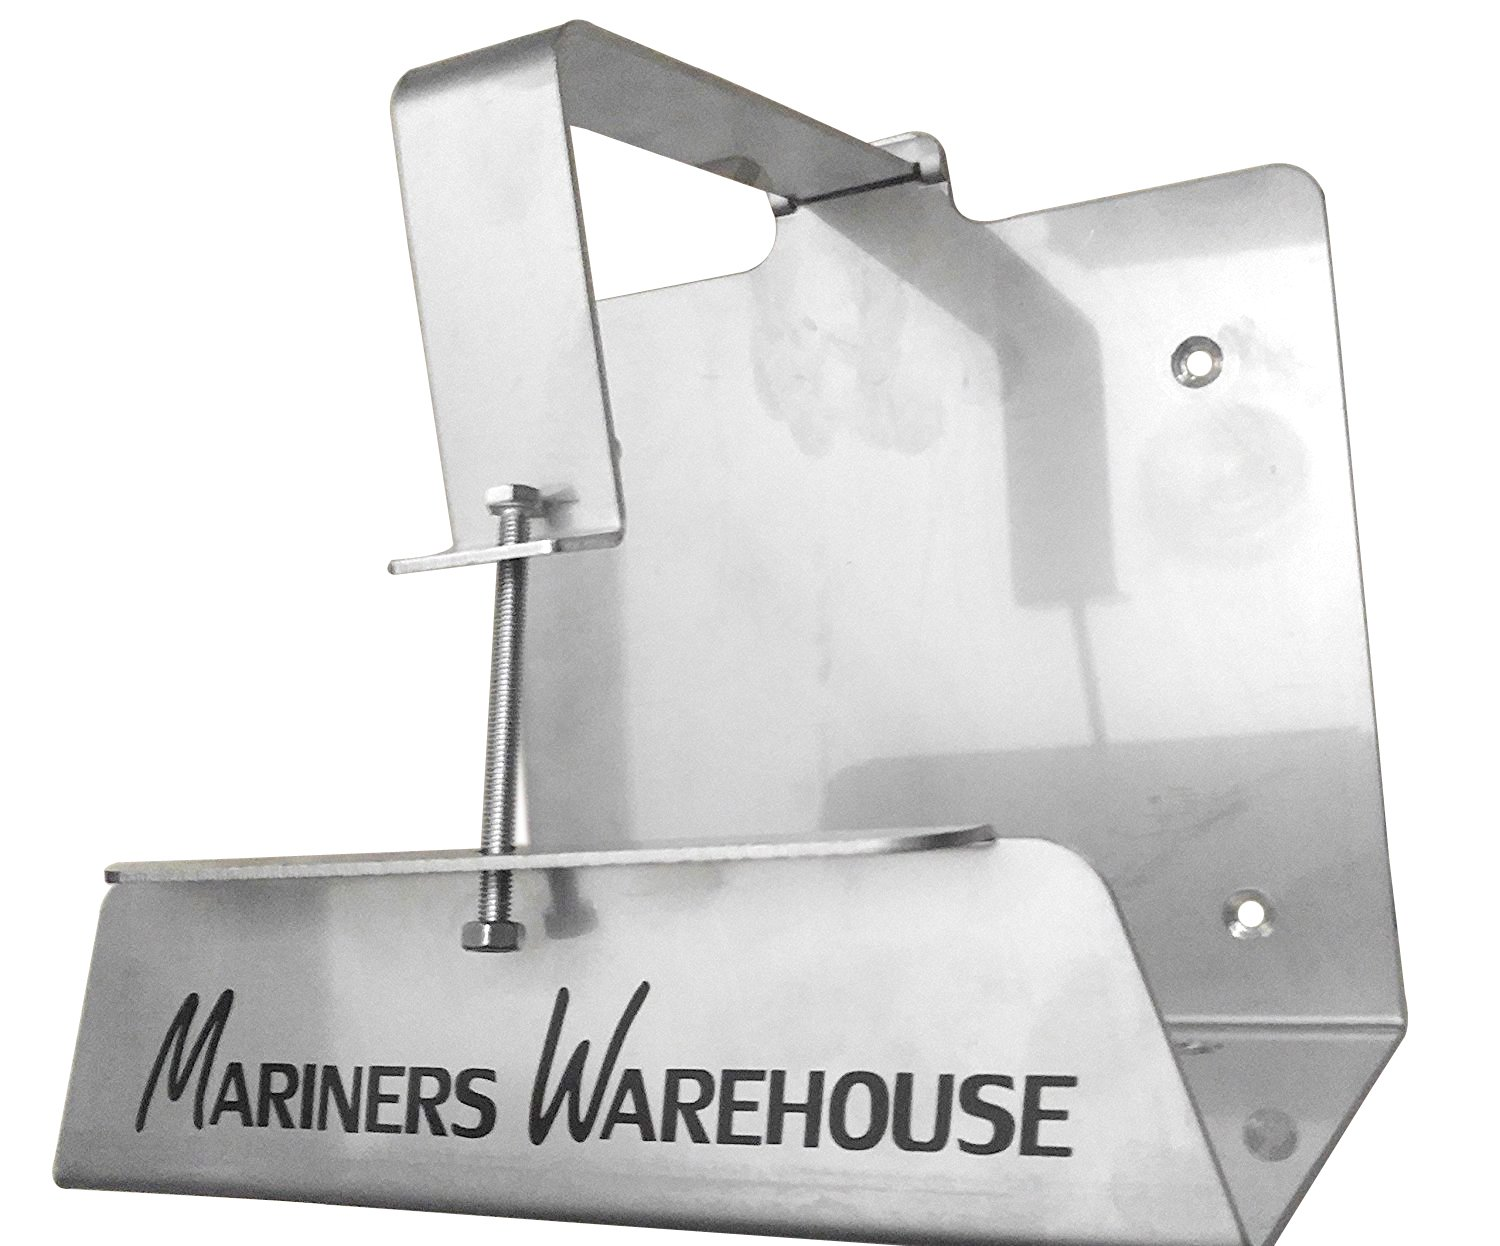 Mariners Warehouse 316 Stainless Steel Yamaha Outboard 2 cycle Oil Tank Reservoir Mount Bracket 6e5-21734-01-33